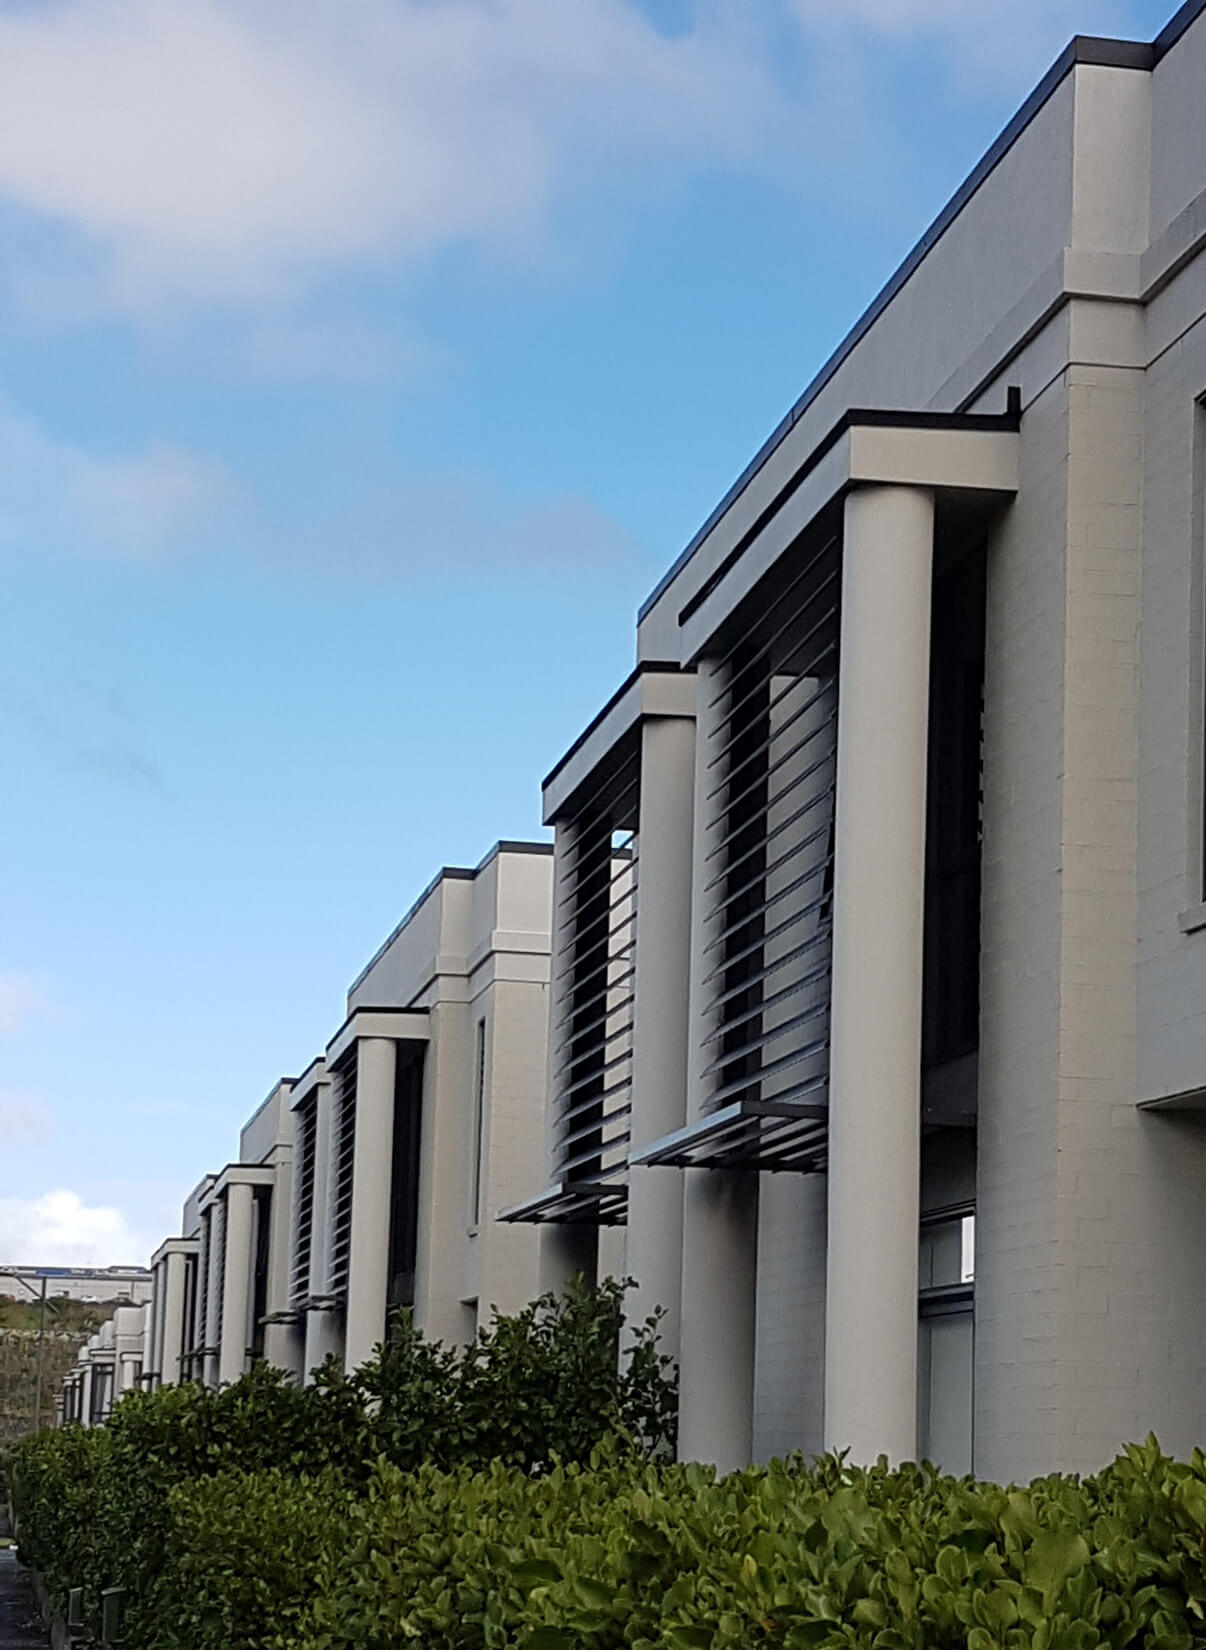 Fixed louvre blades - Stonefields Special Housing Development